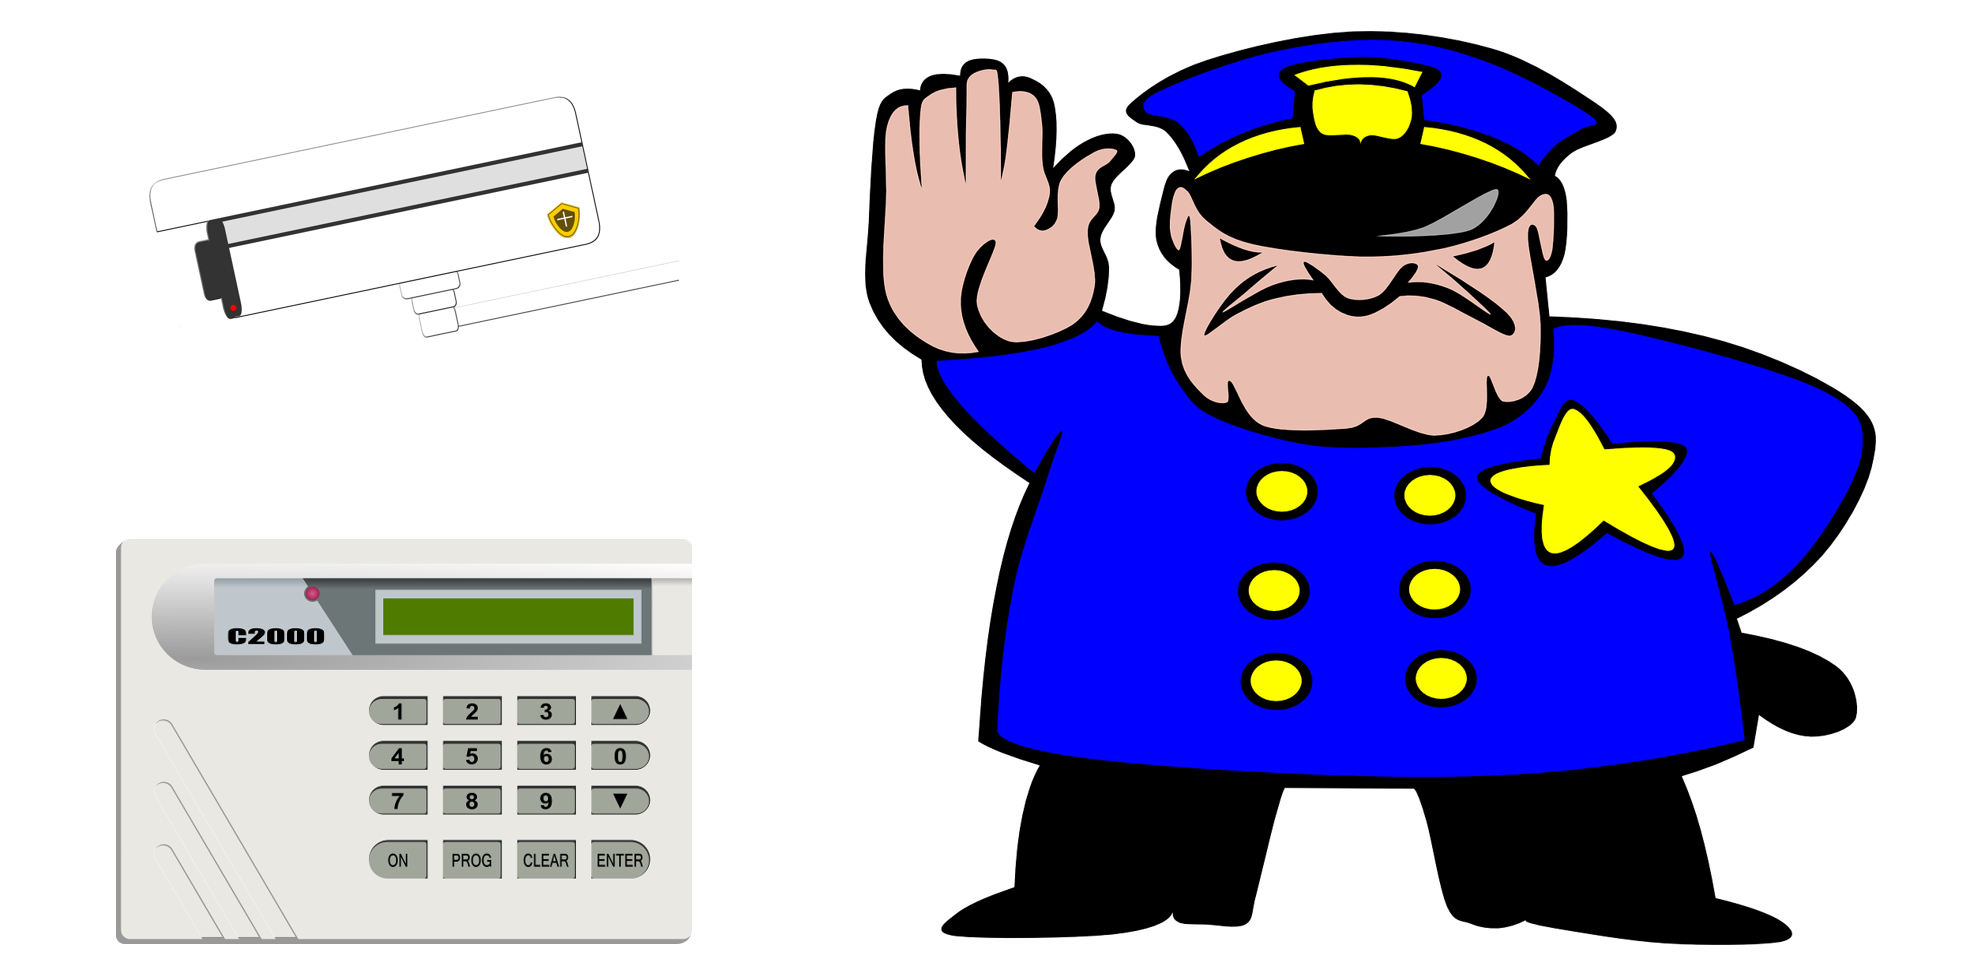 policeman-vs-security alarm system.png